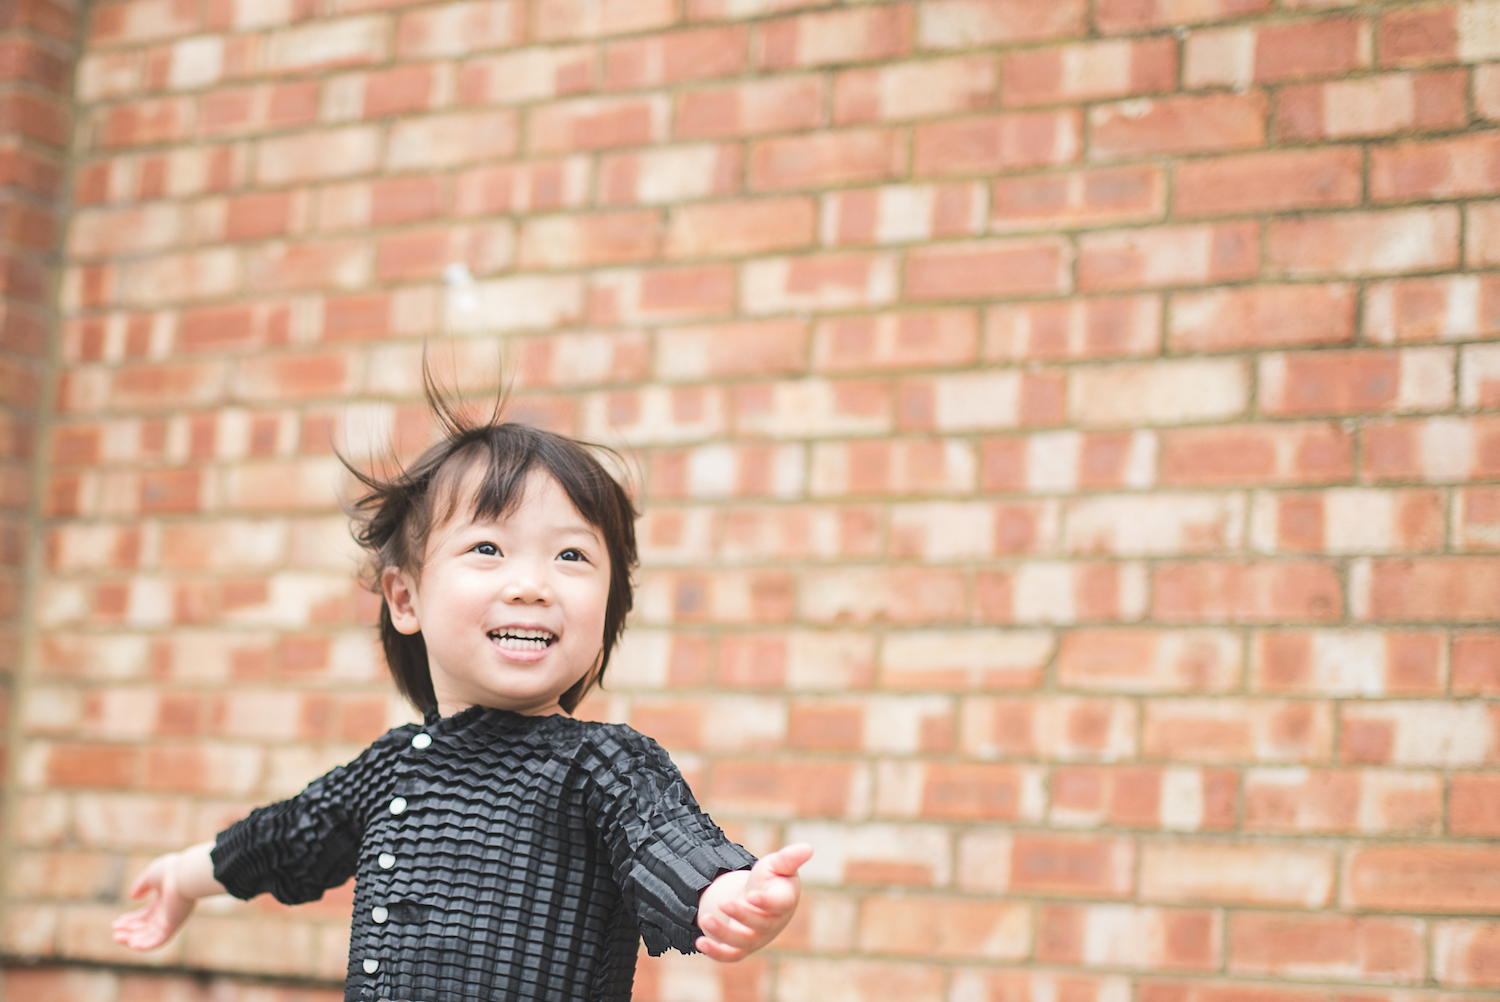 Clever clothing grows with your toddler